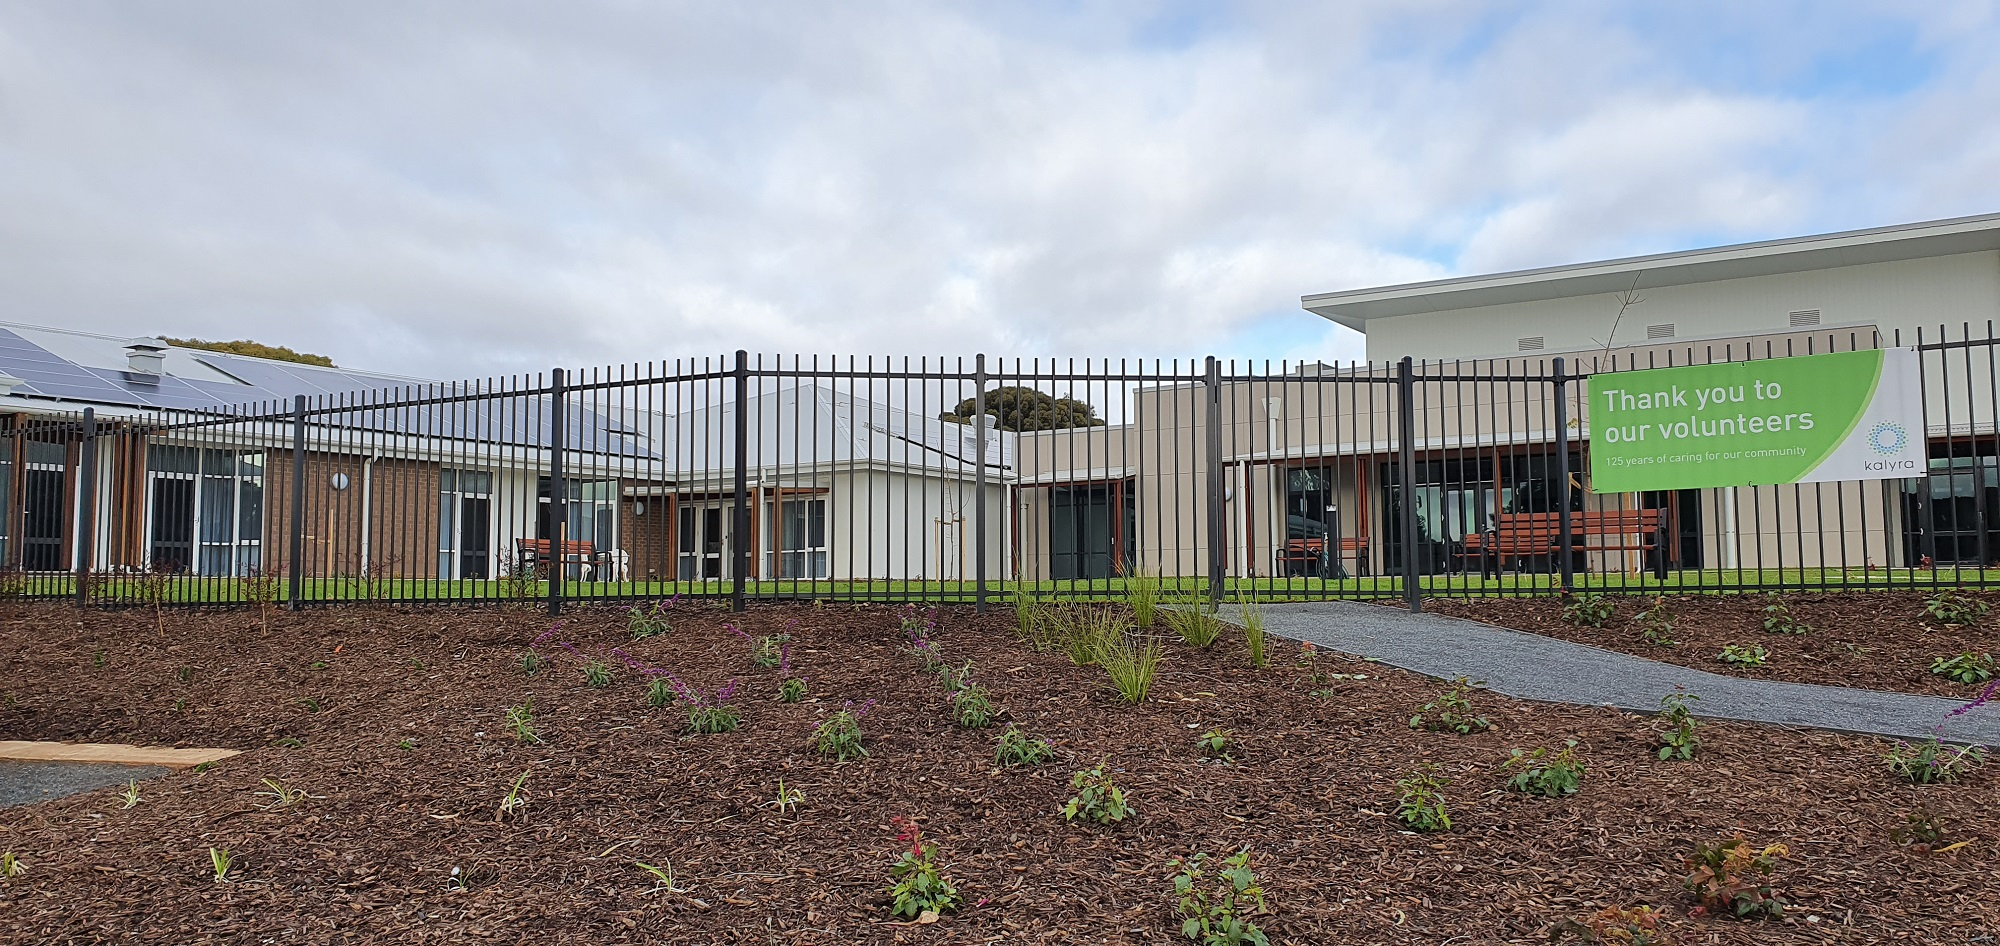 Commercial Fencing Adelaide Fence Centre Retirement Village Boundary Fencing 4